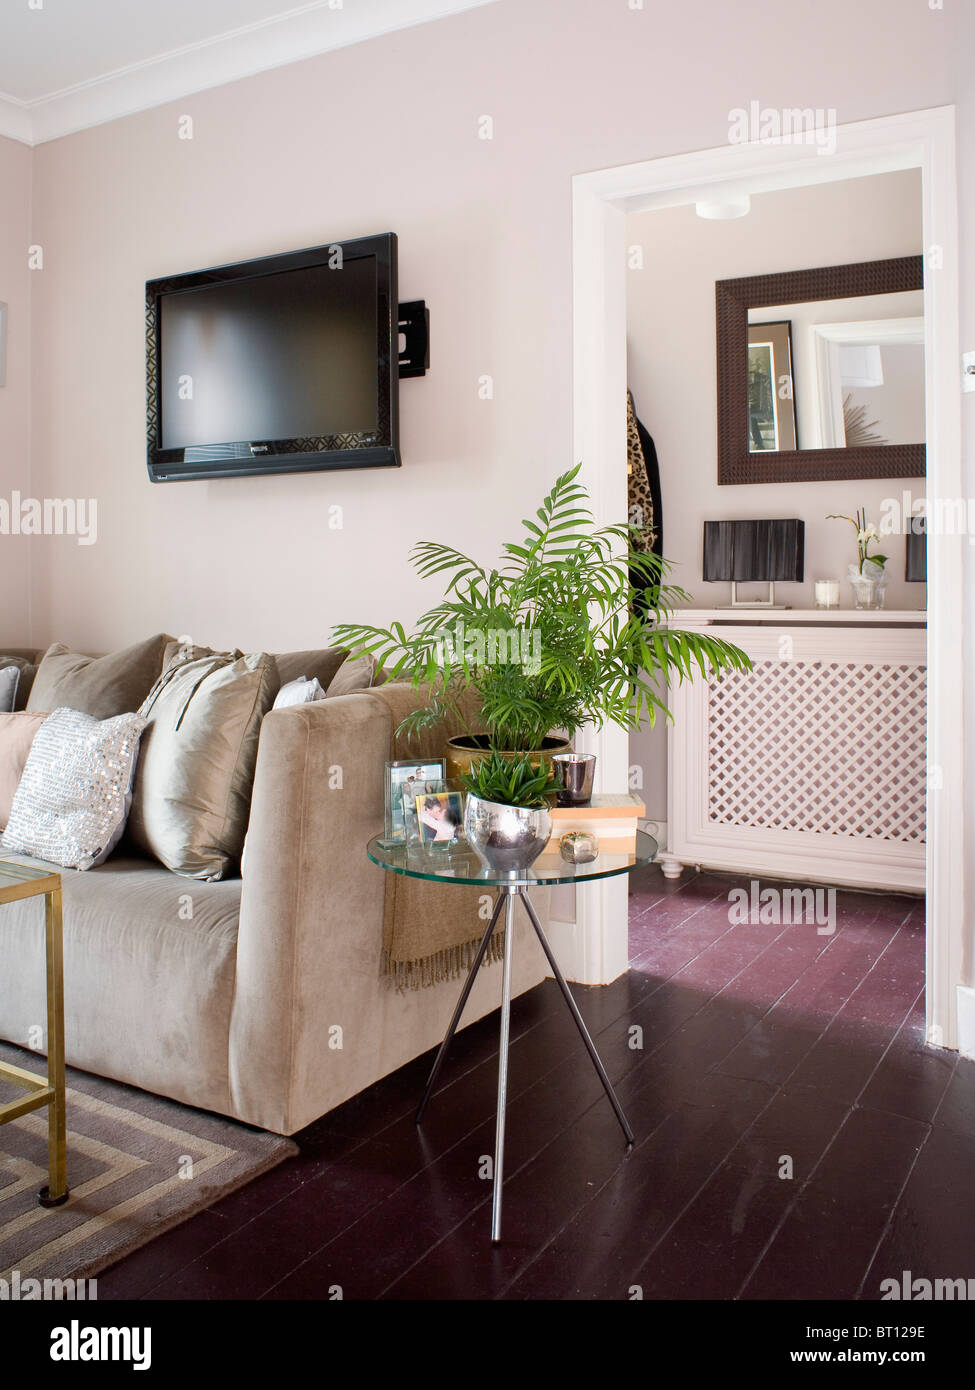 fernsehen auf wand ber beige wildleder sofa im modernen wohnzimmer mit gr nem farn im topf auf. Black Bedroom Furniture Sets. Home Design Ideas